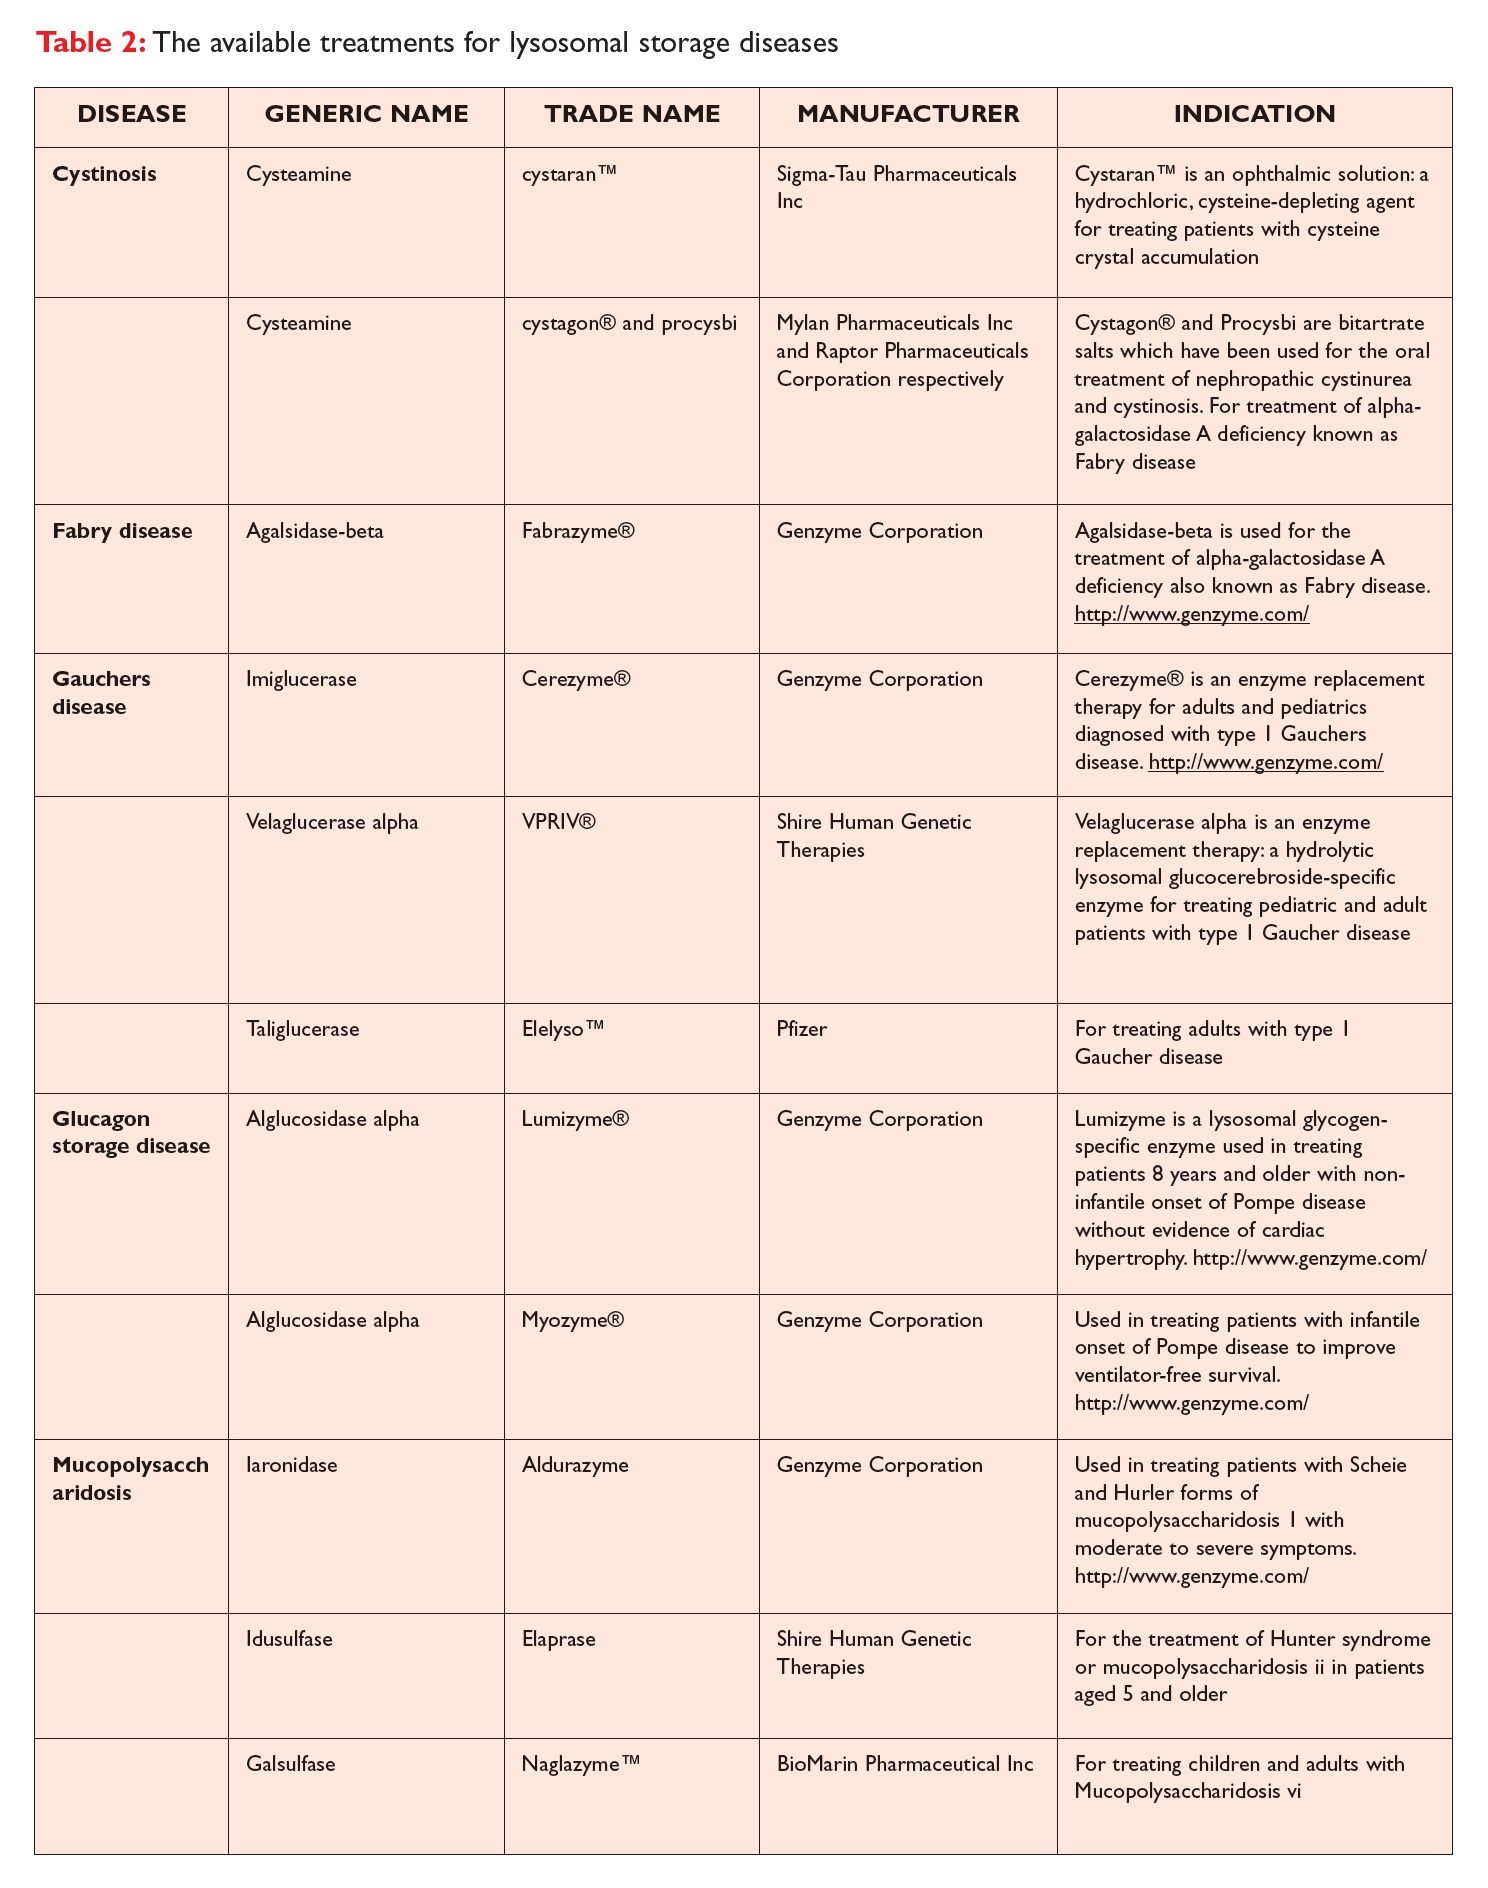 Table 2 The available treatments for lysosomal storage diseases